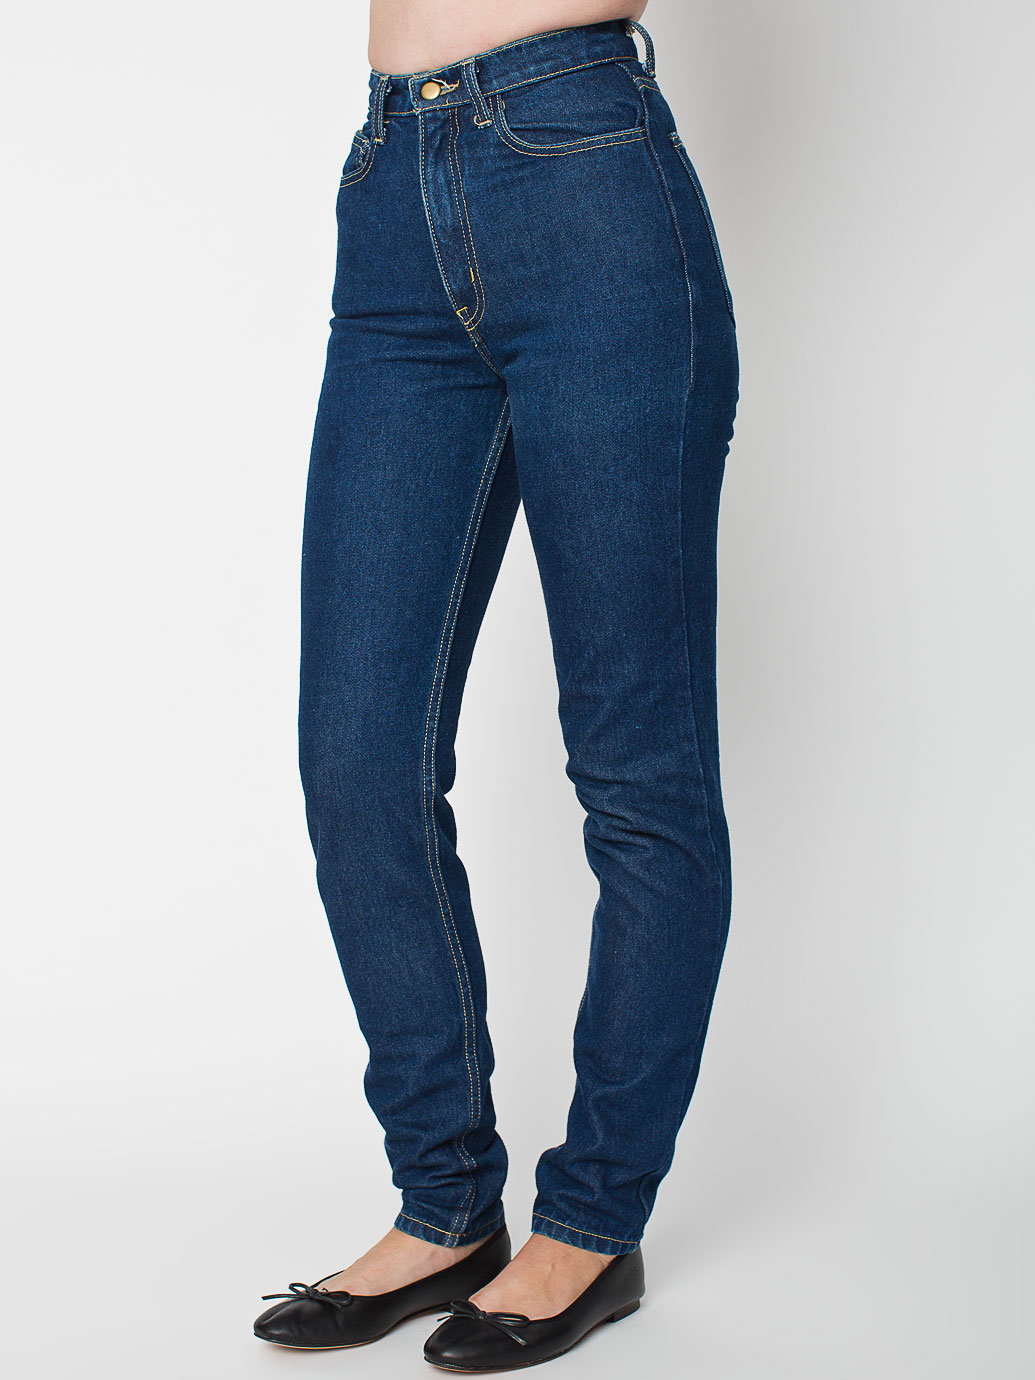 Dark Wash High-Waist Jean | American Apparel